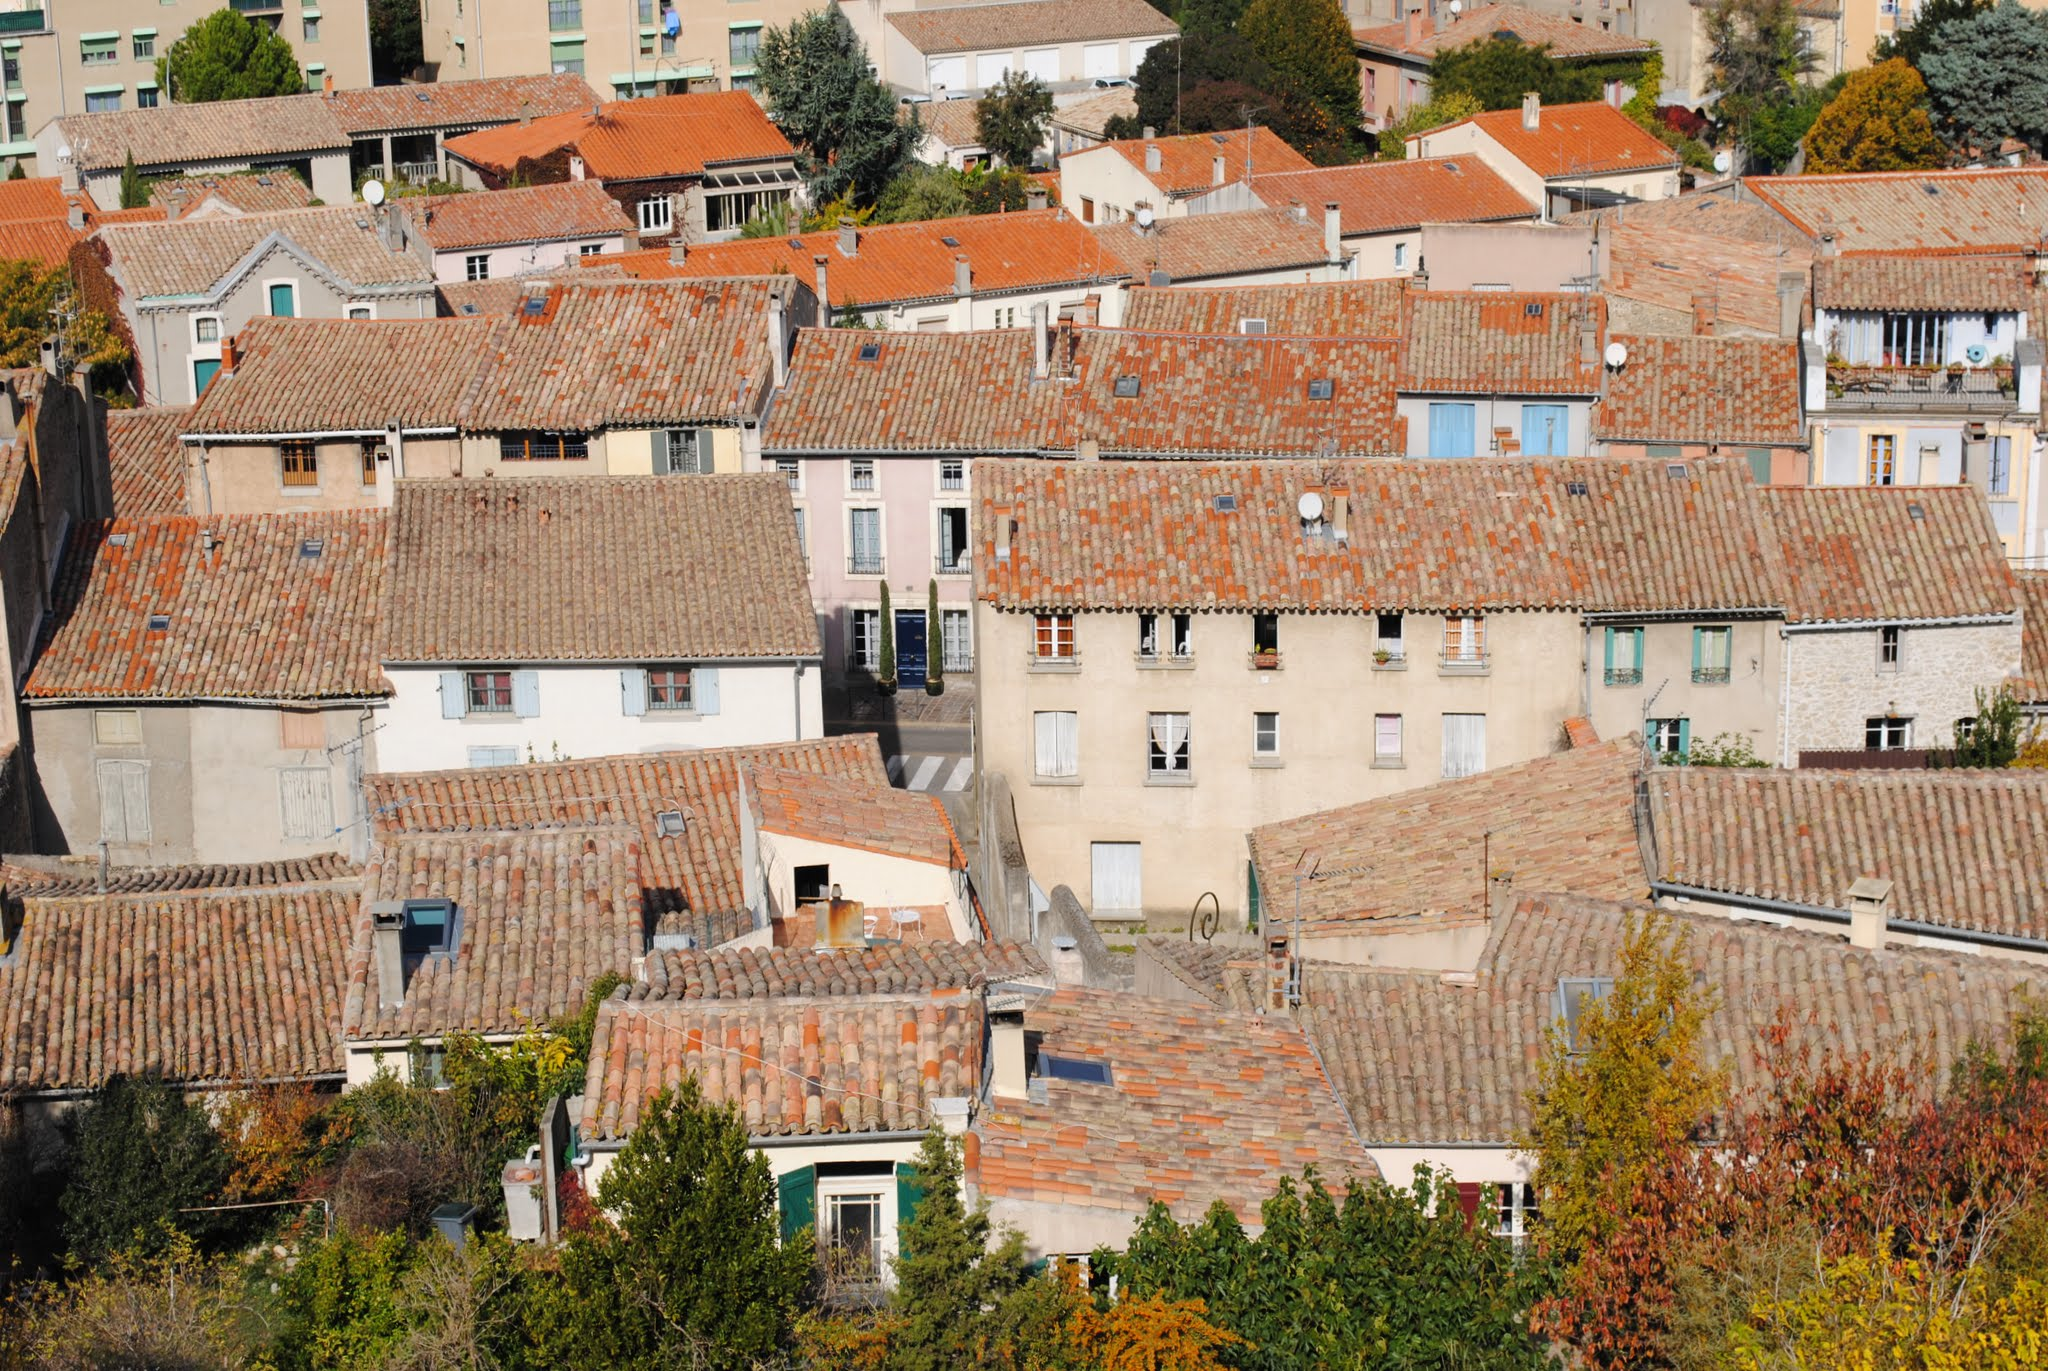 My Photos: France -- Carcassonne -- Views of the Village